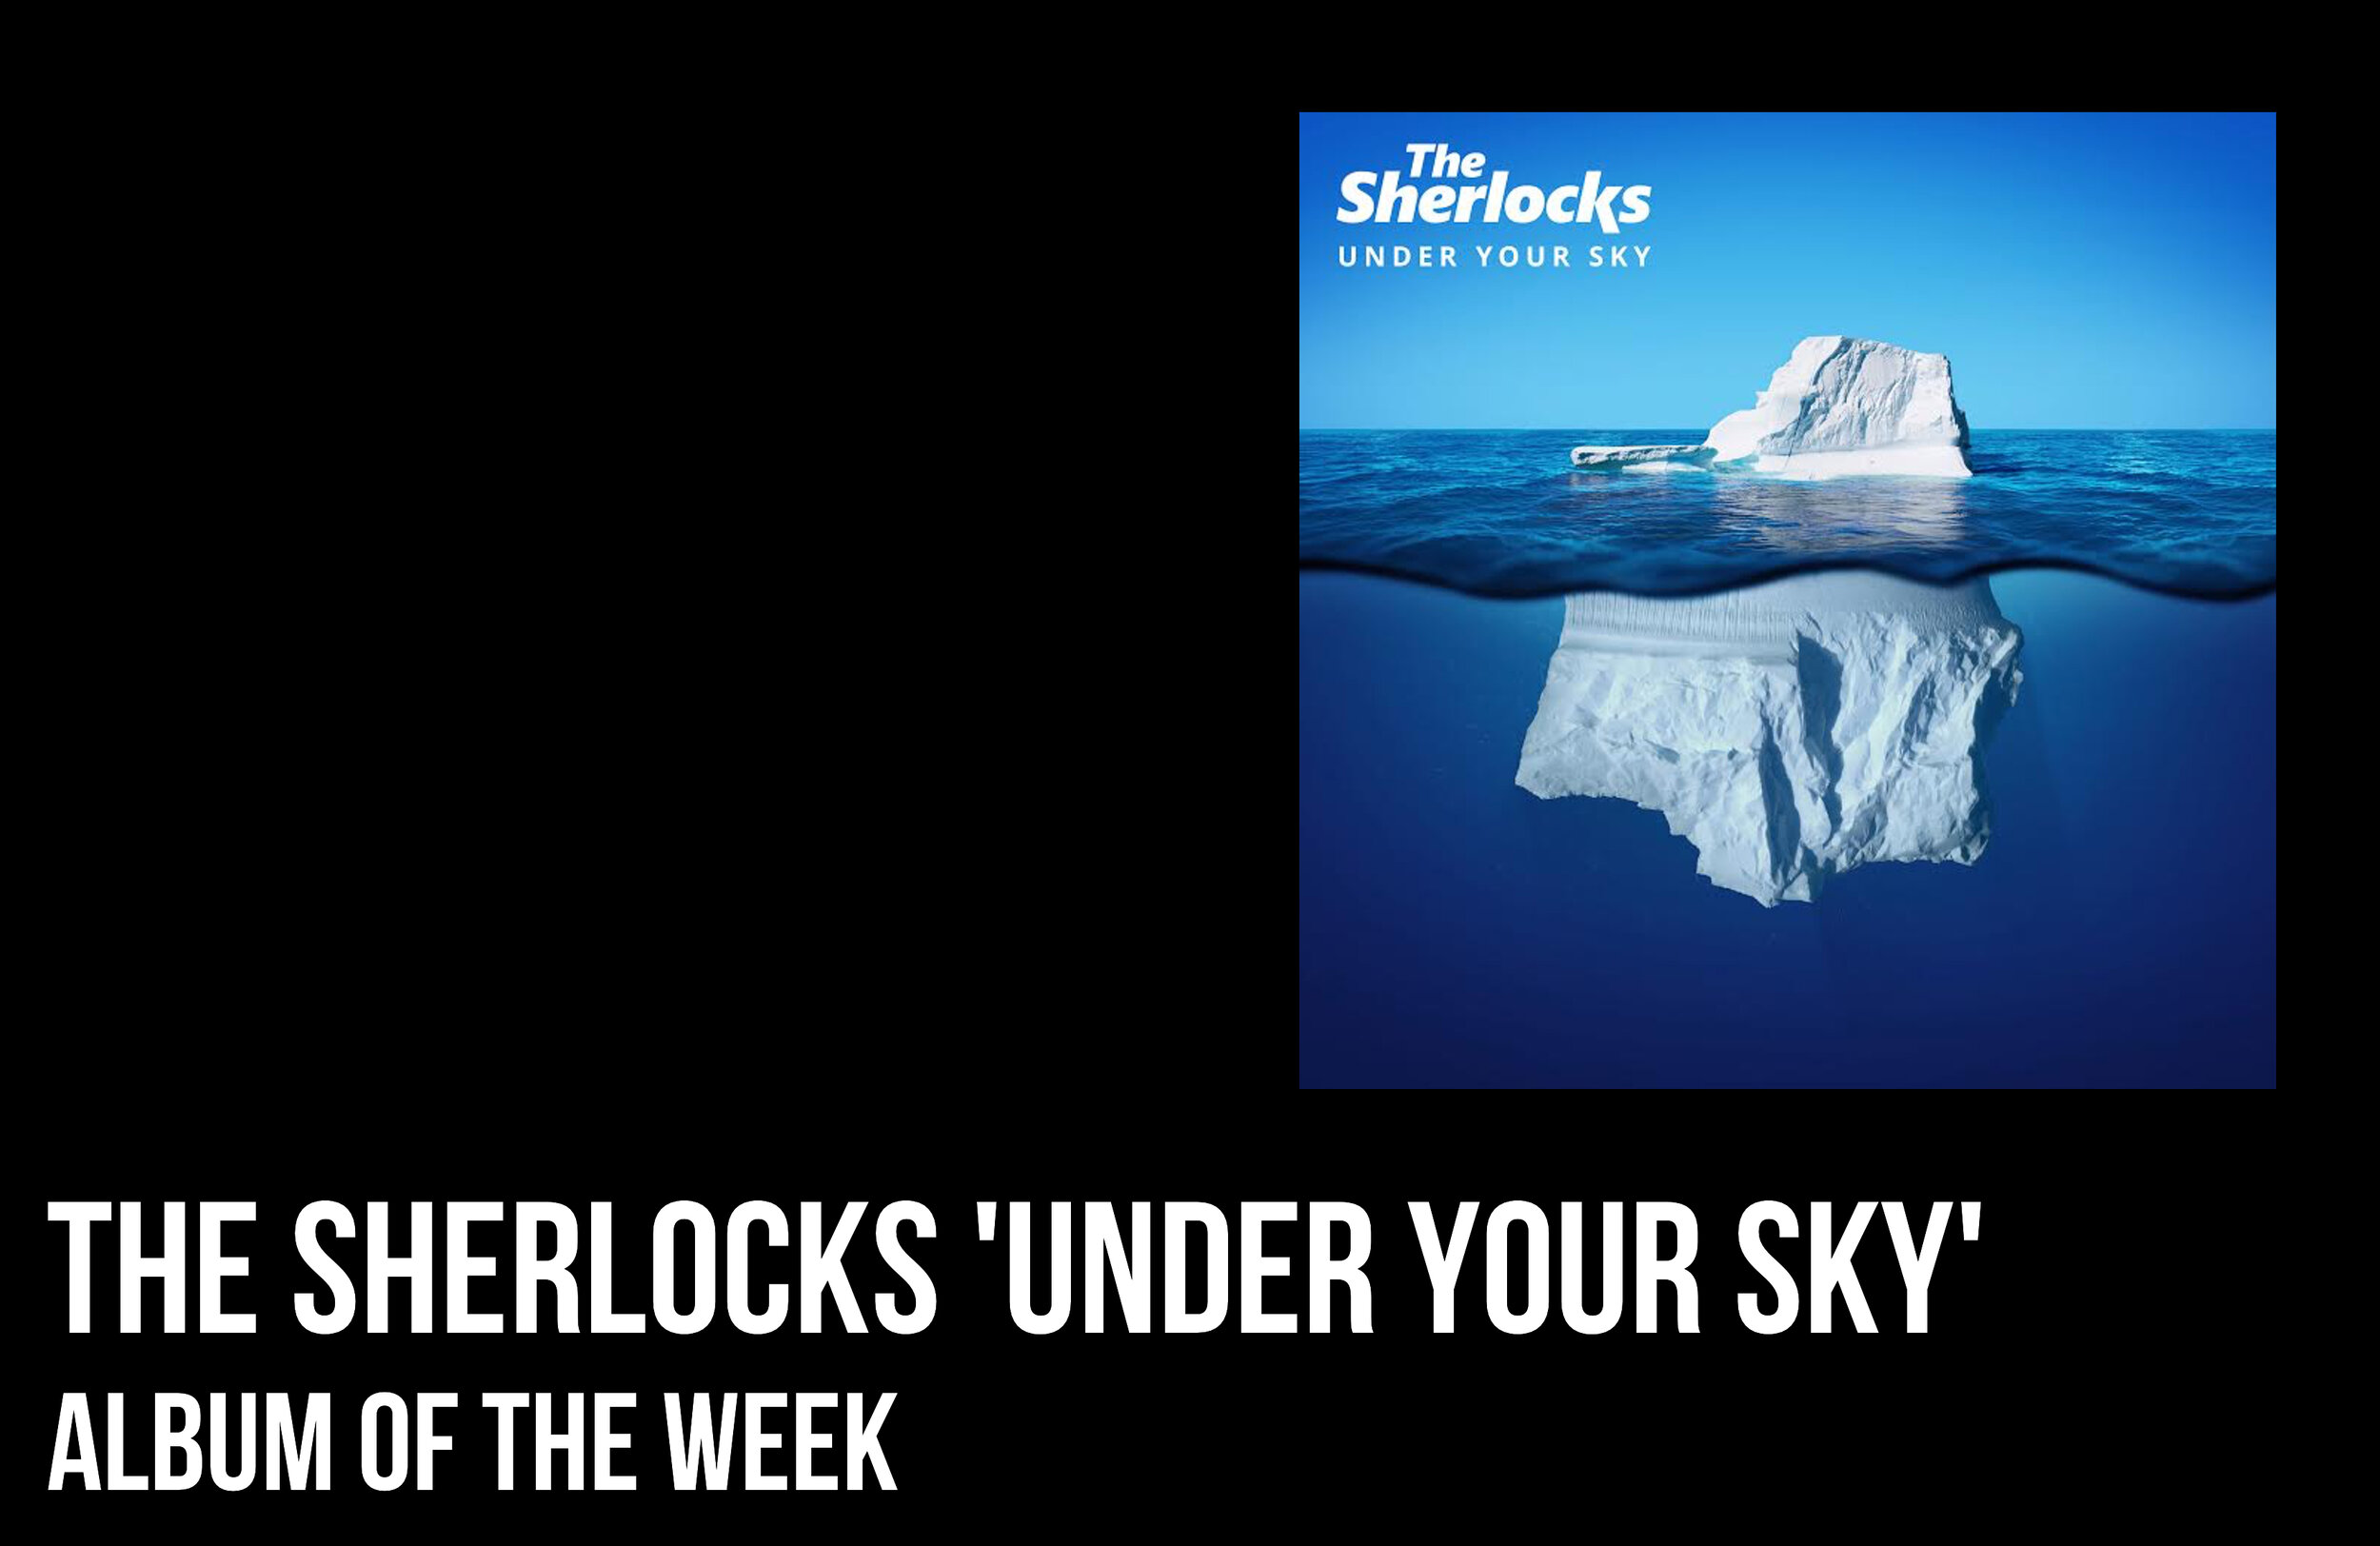 sherlocks aotw slider.jpg